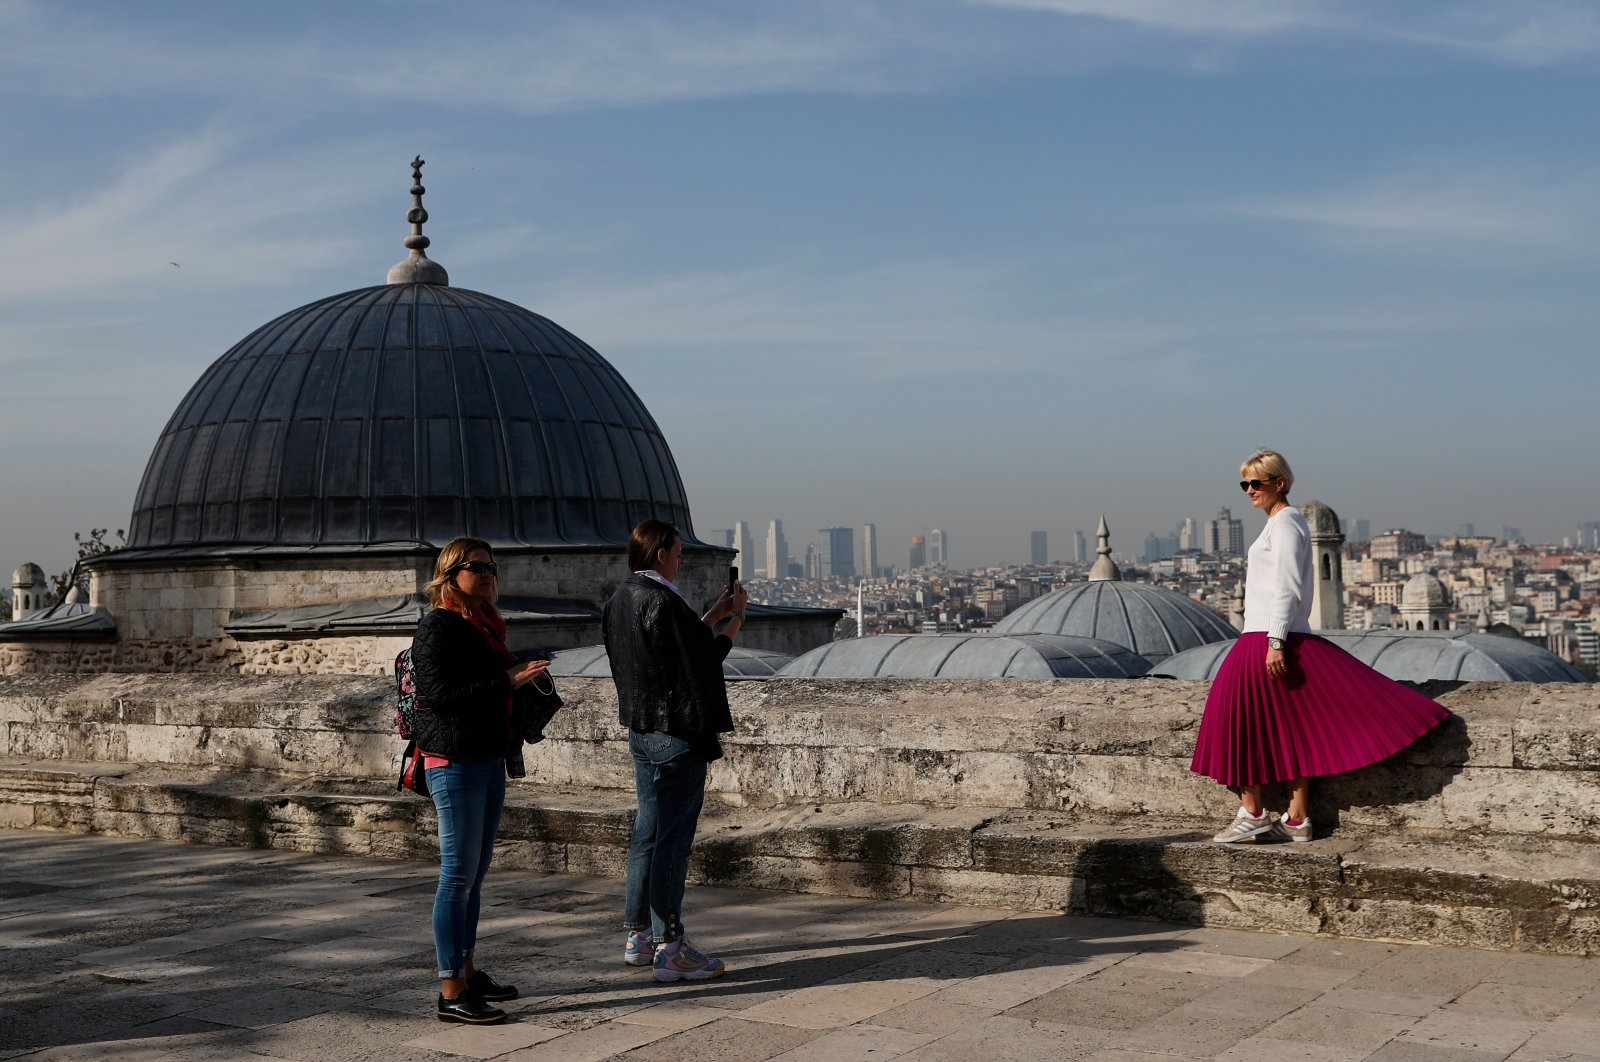 A tourist poses for a souvenir photo at the courtyard of Süleymaniye Mosque in Istanbul, Turkey, April 30, 2021. (Reuters Photo)